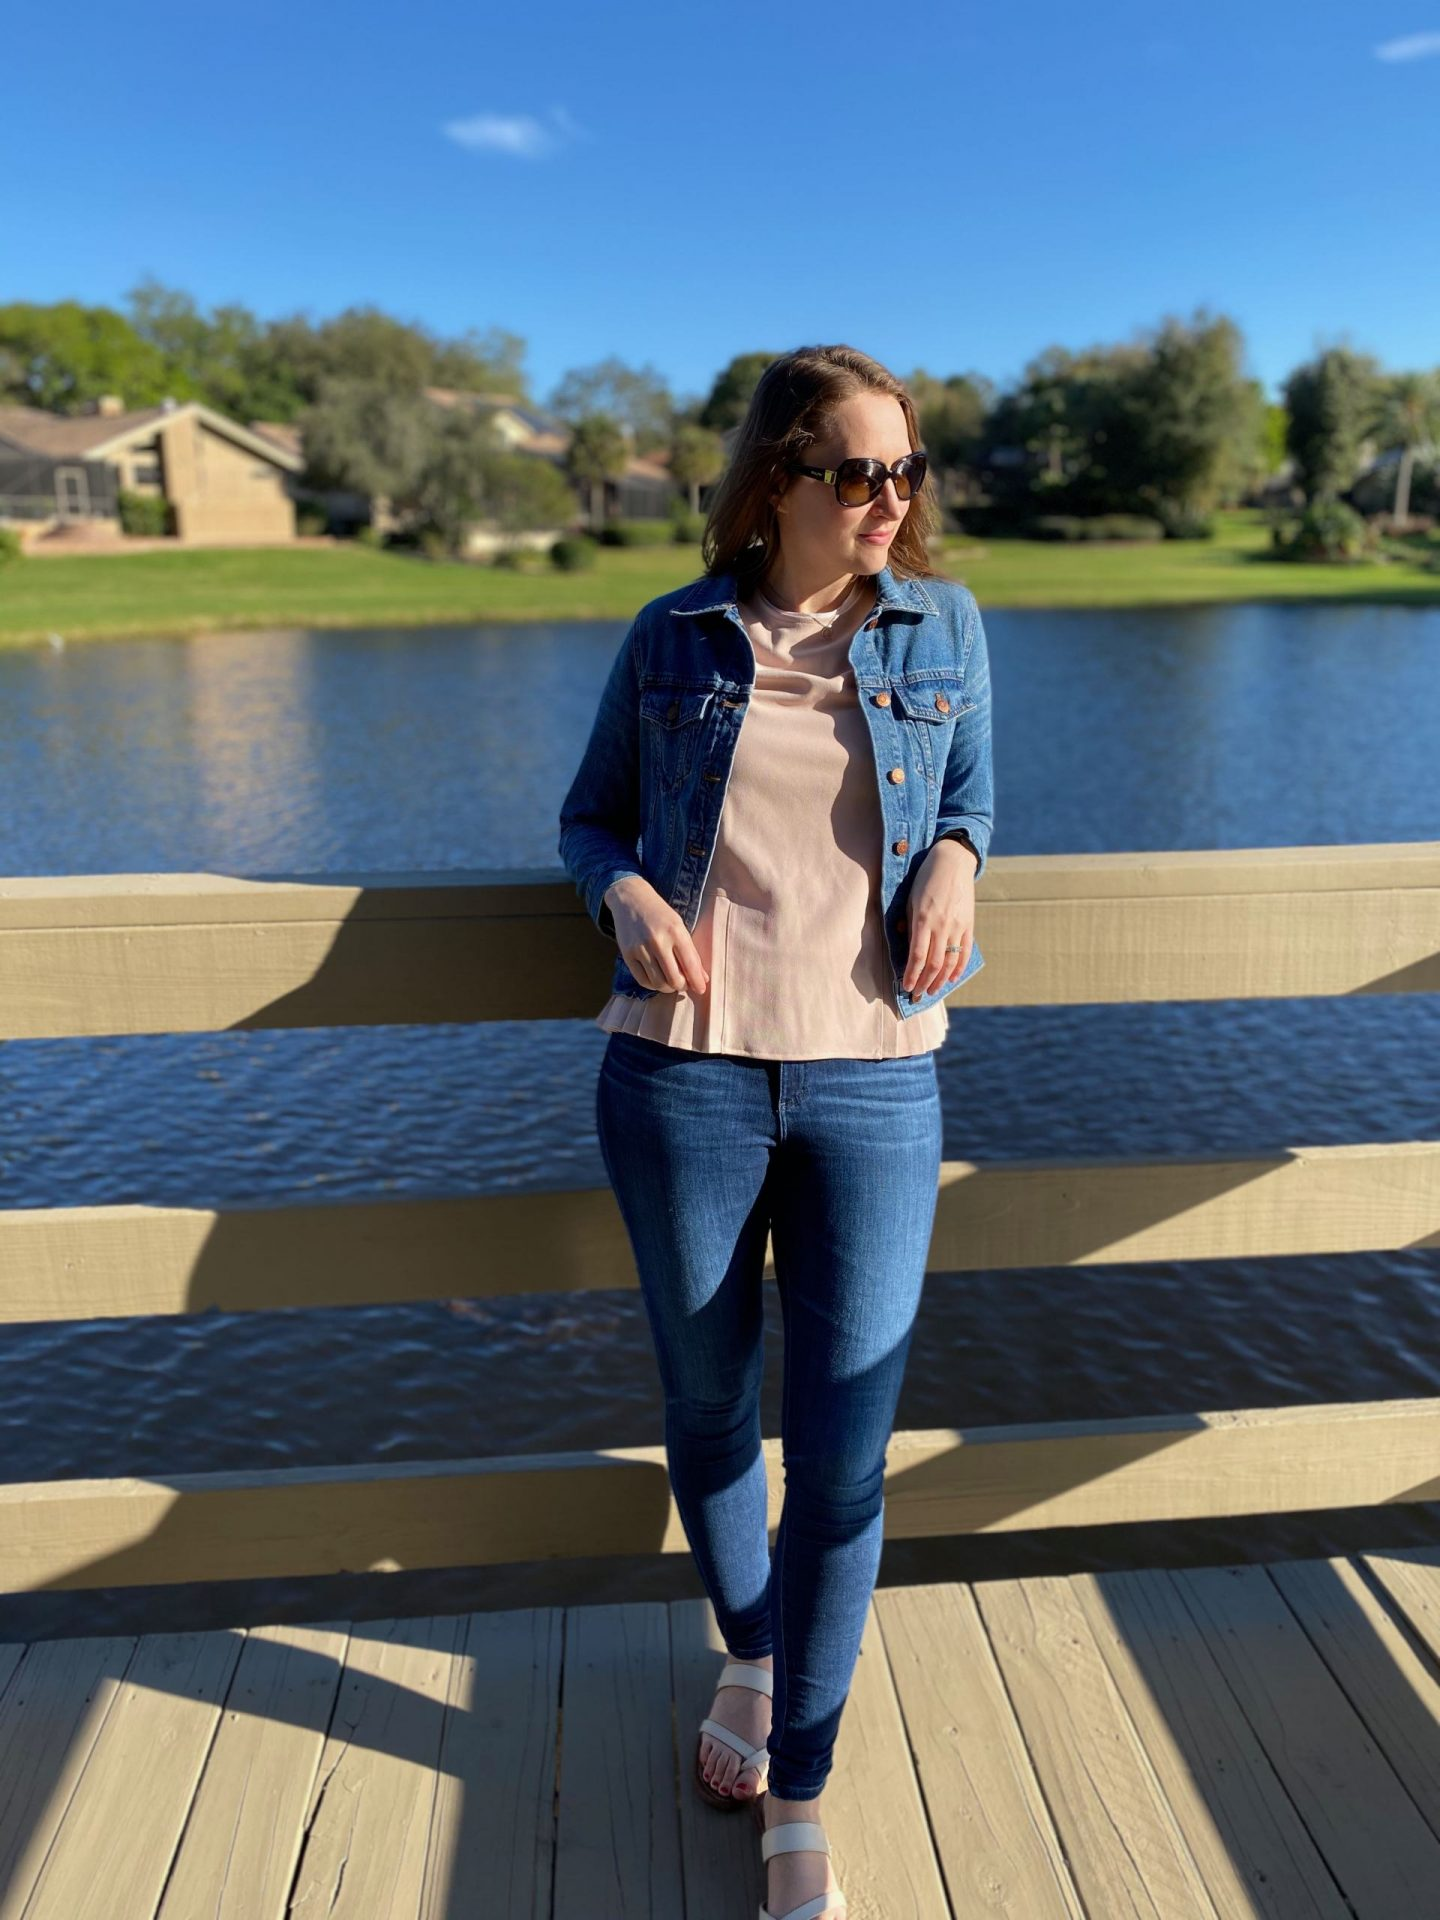 Jean Jacket Outfit Ideas | How to Style a Pastel Pink Shirt for Spring | The Spectacular Adventurer